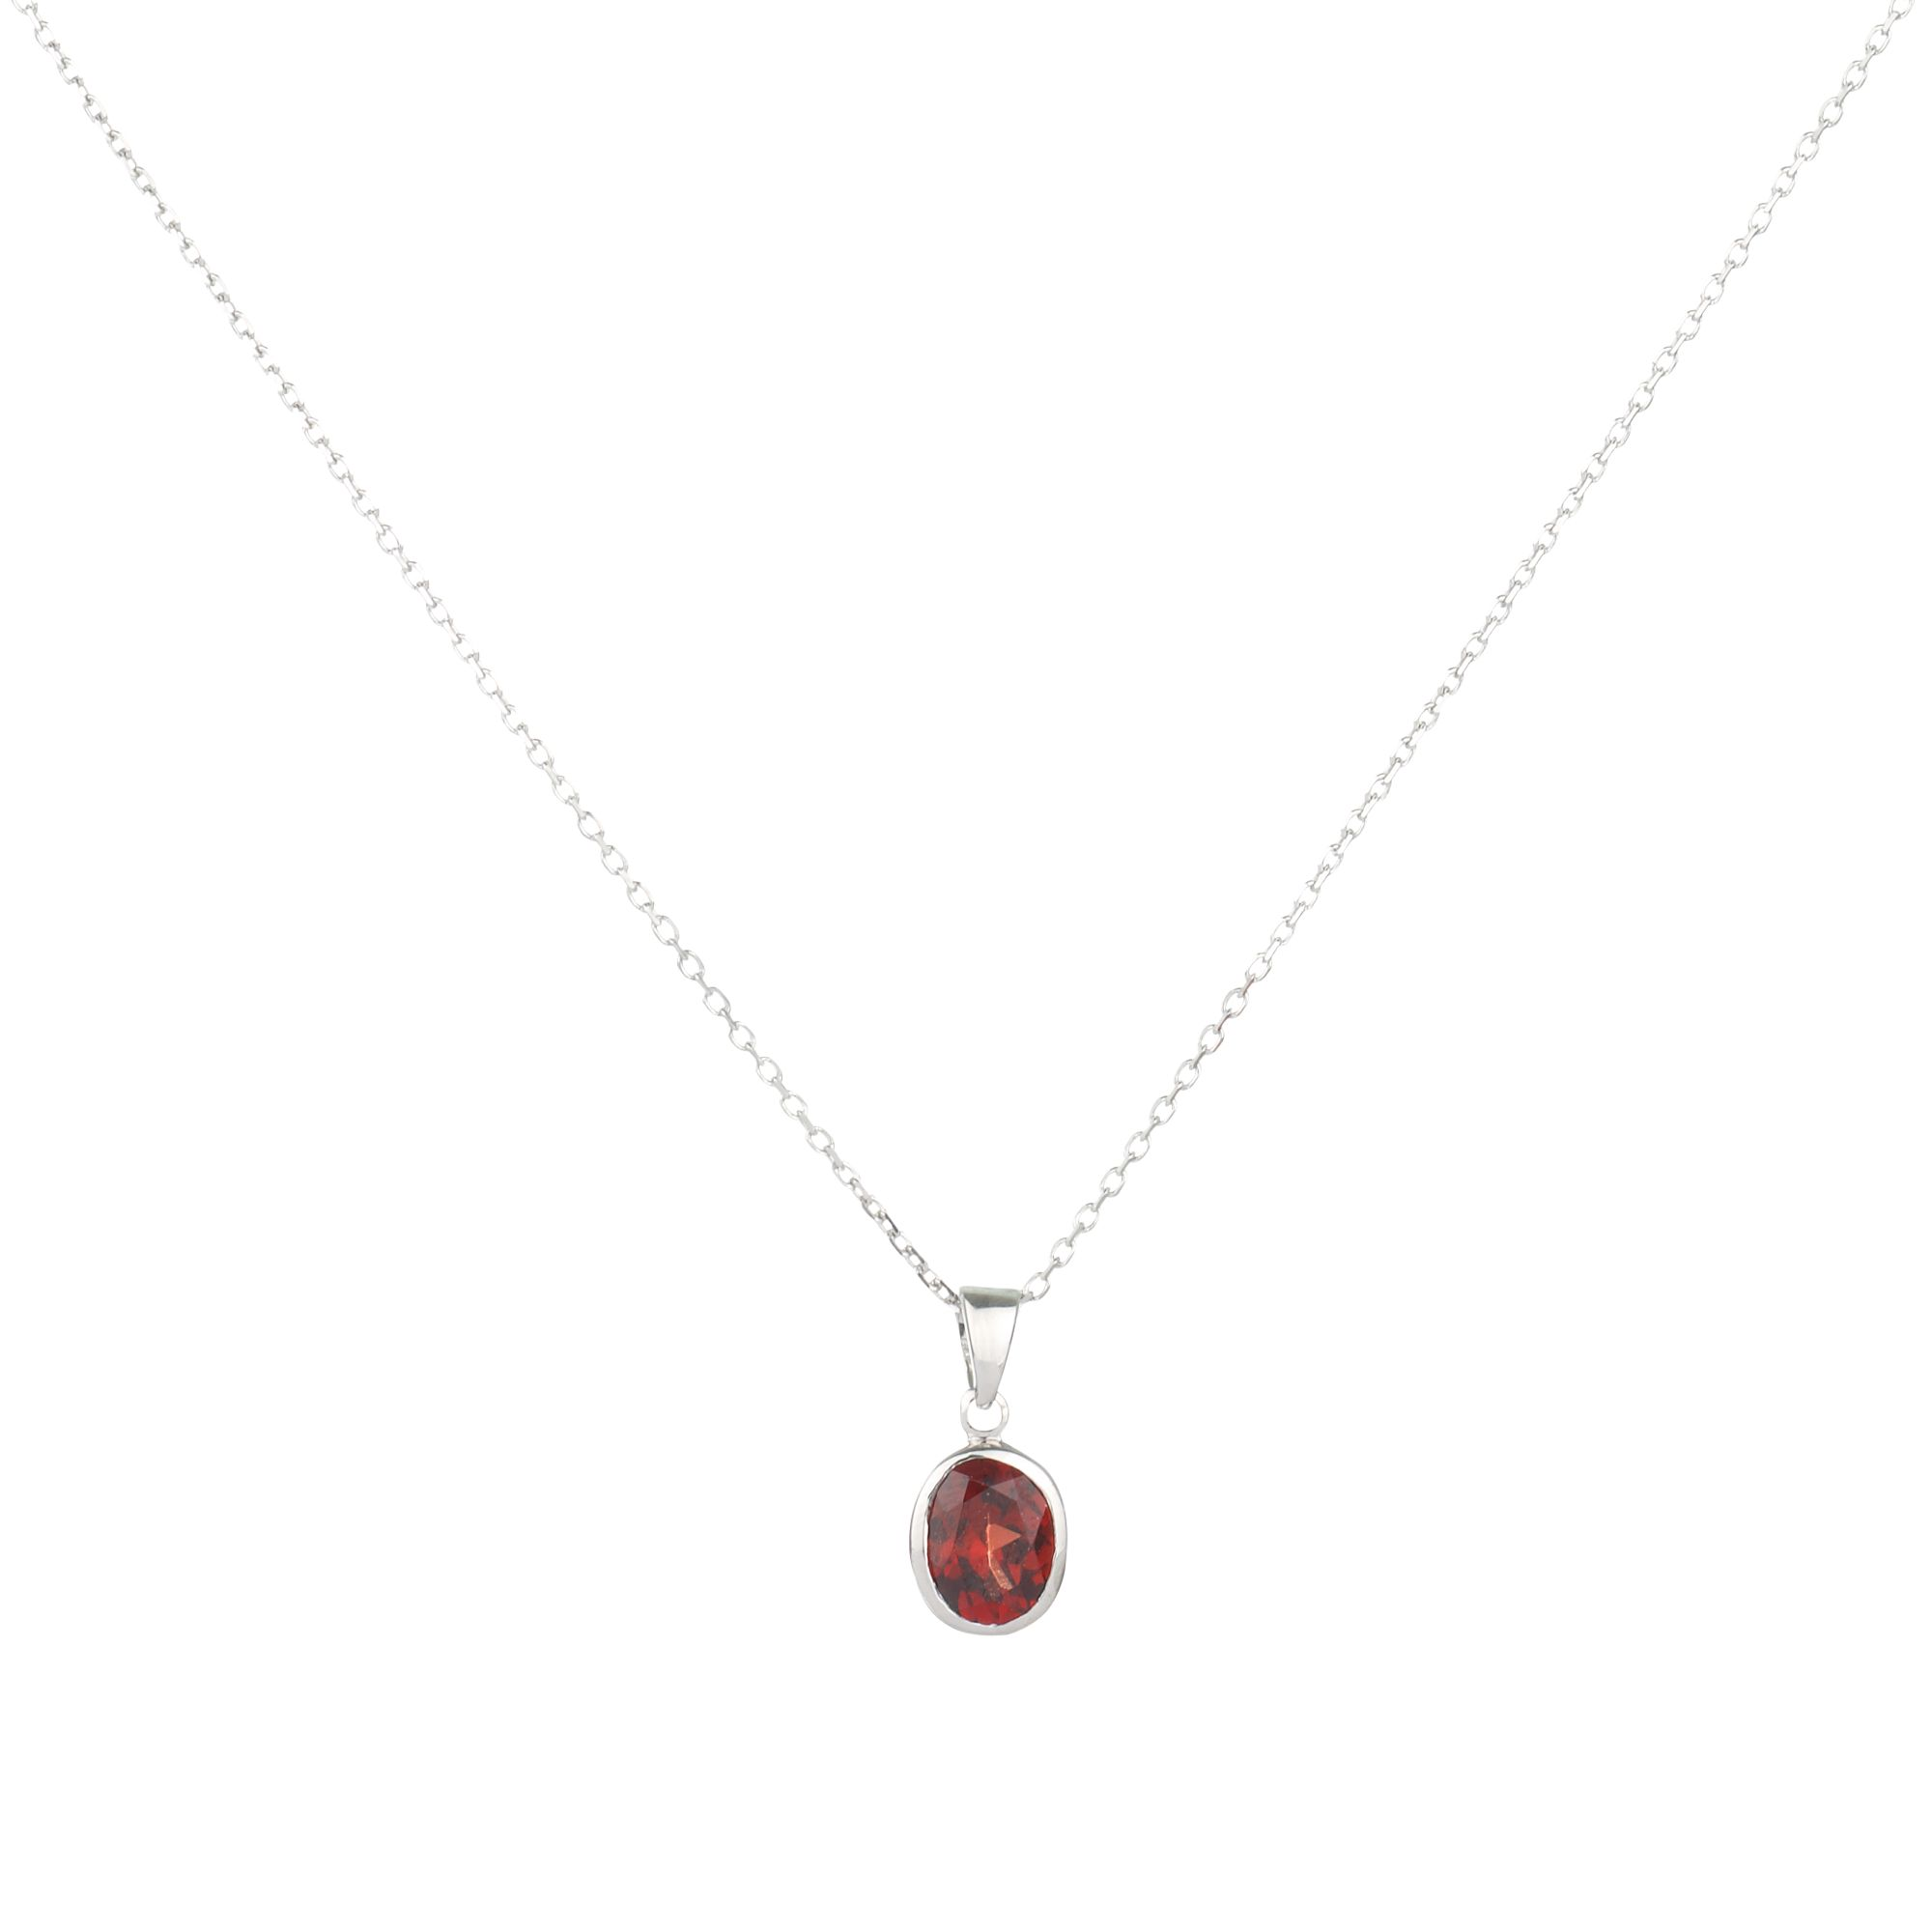 9ct White Gold Garnet Rubover Oval Pendant Necklace